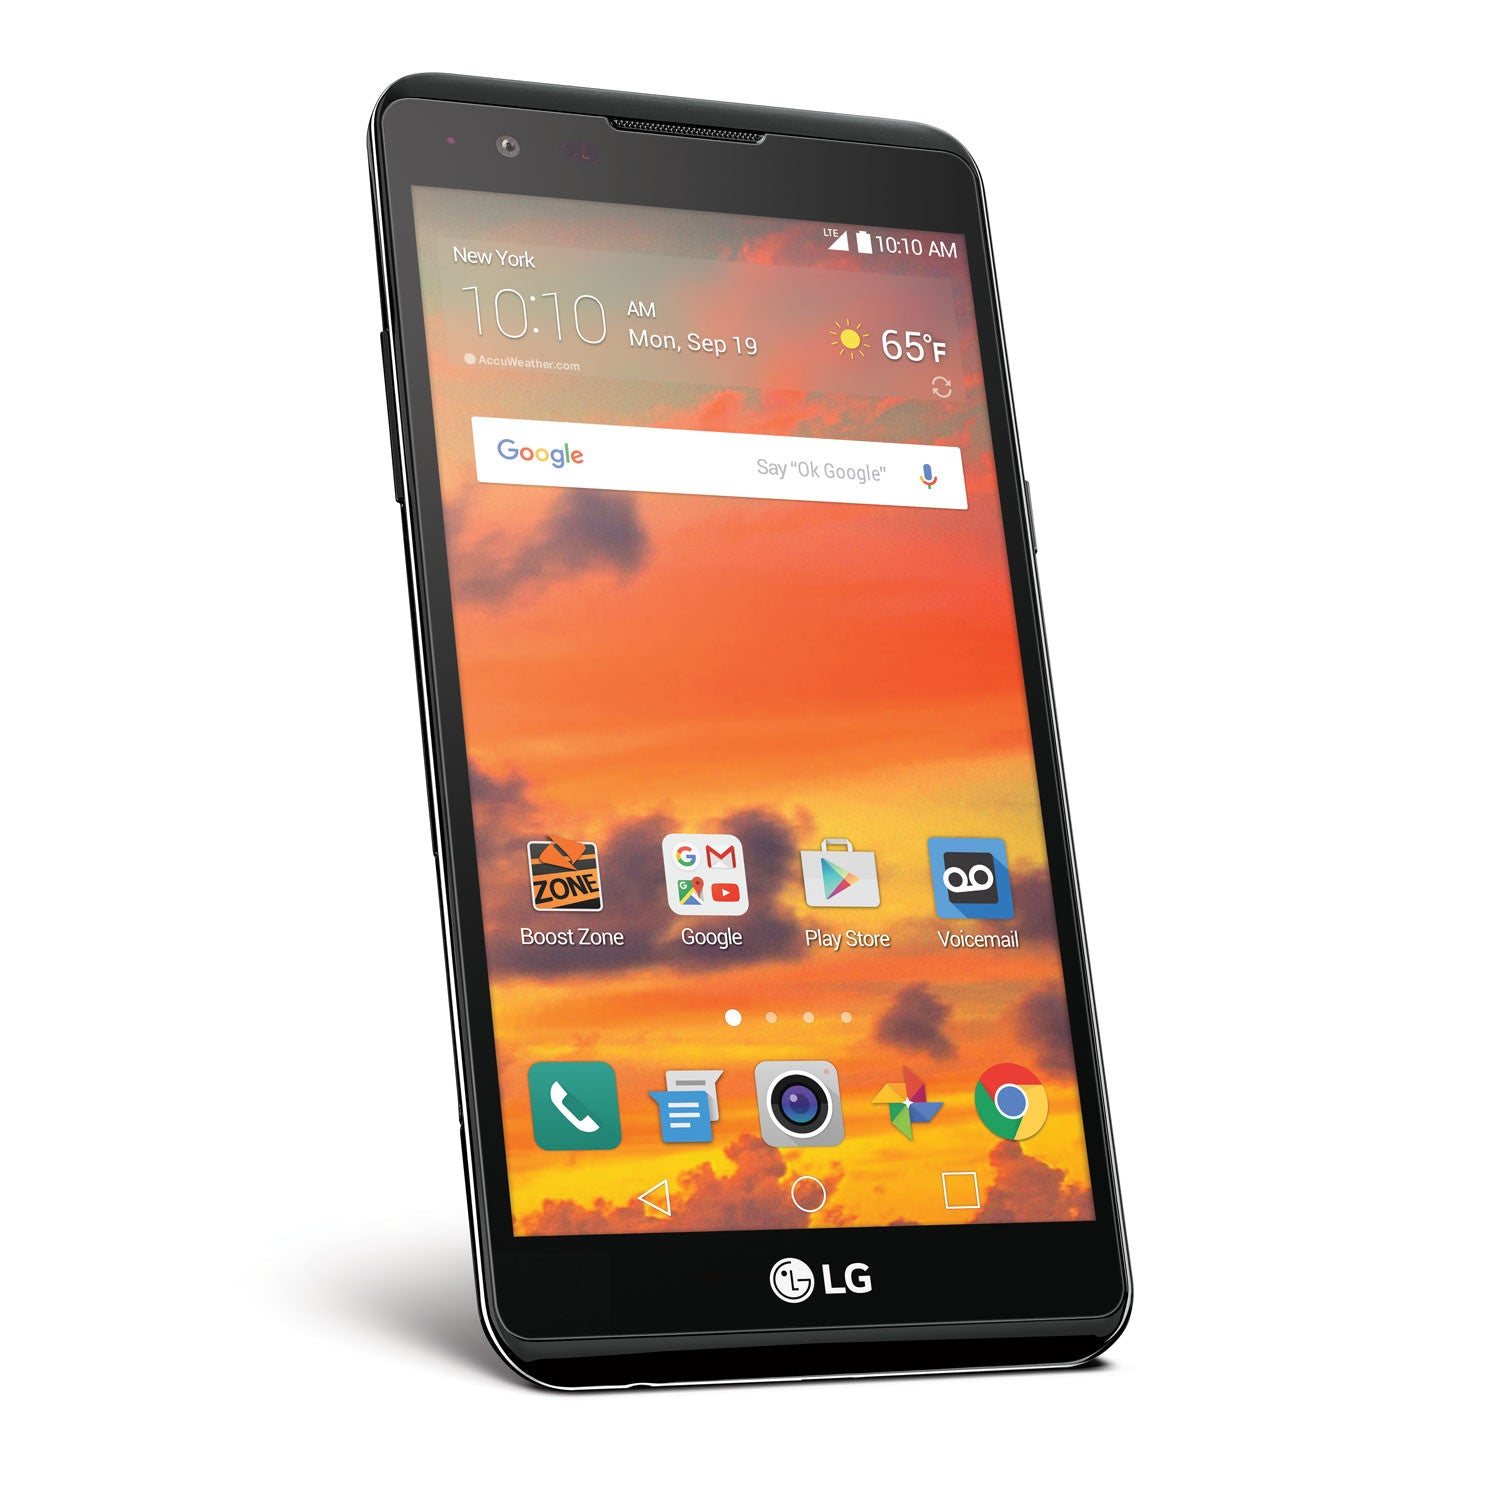 LG X Power 16GB for Virgin Mobile - shopcelldeals - 2